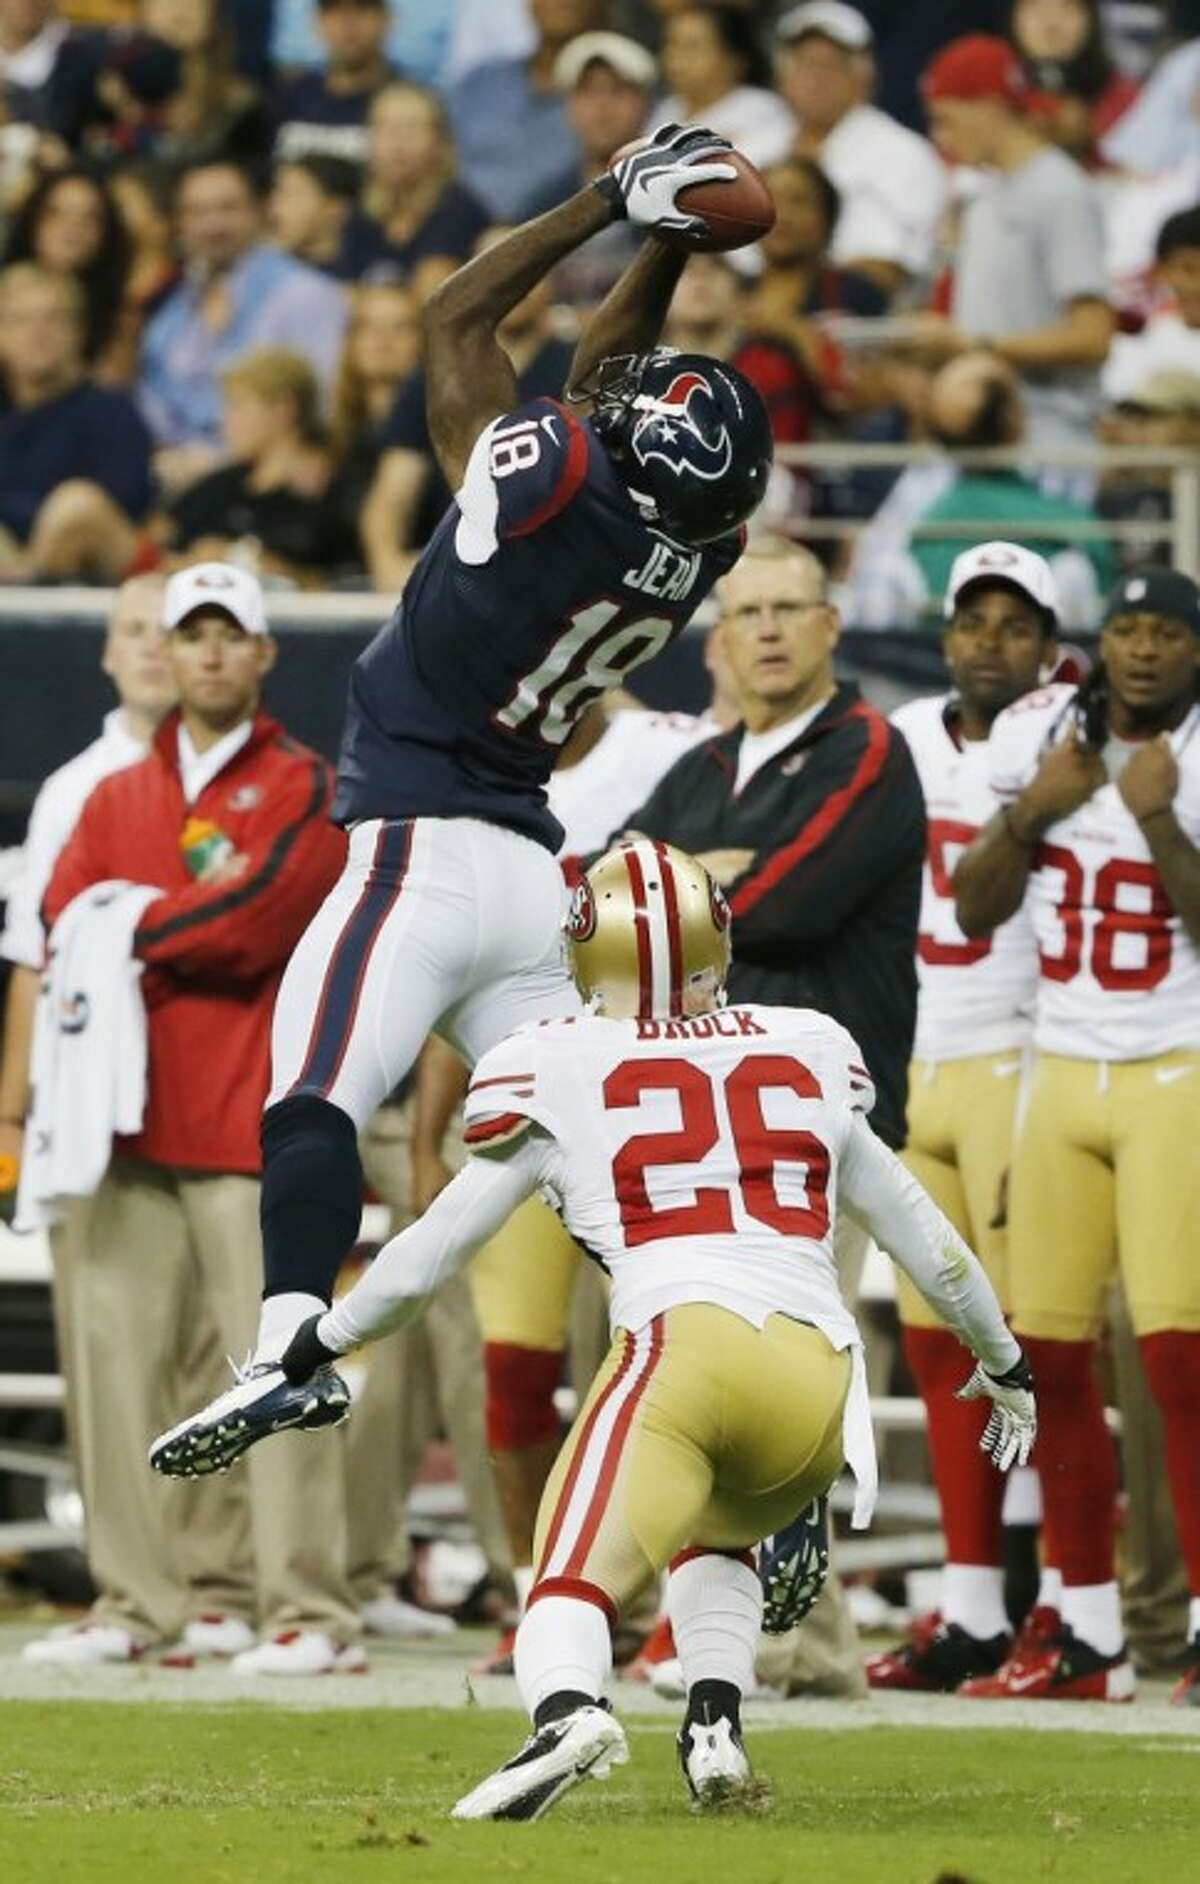 Houston Texans wide receiver Lestar Jean pulls down a 35-yard reception over the San Francisco 49ers' Tramaine Brock during the first half of Saturday's game in Houston.